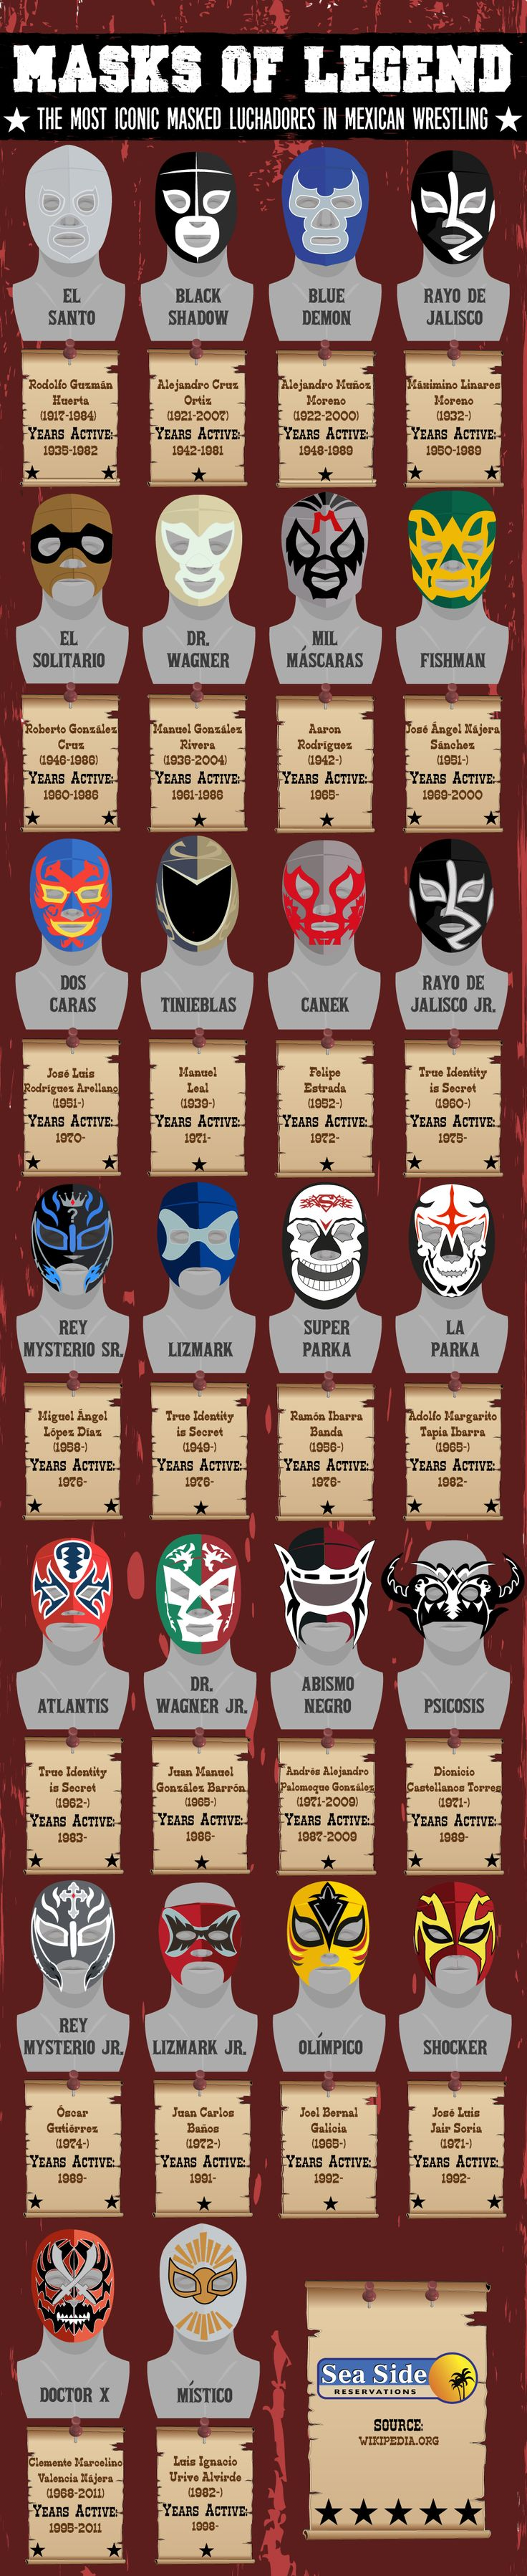 Masks of Legend: The Most Iconic Masked Luchadores in Mexican Wrestling…